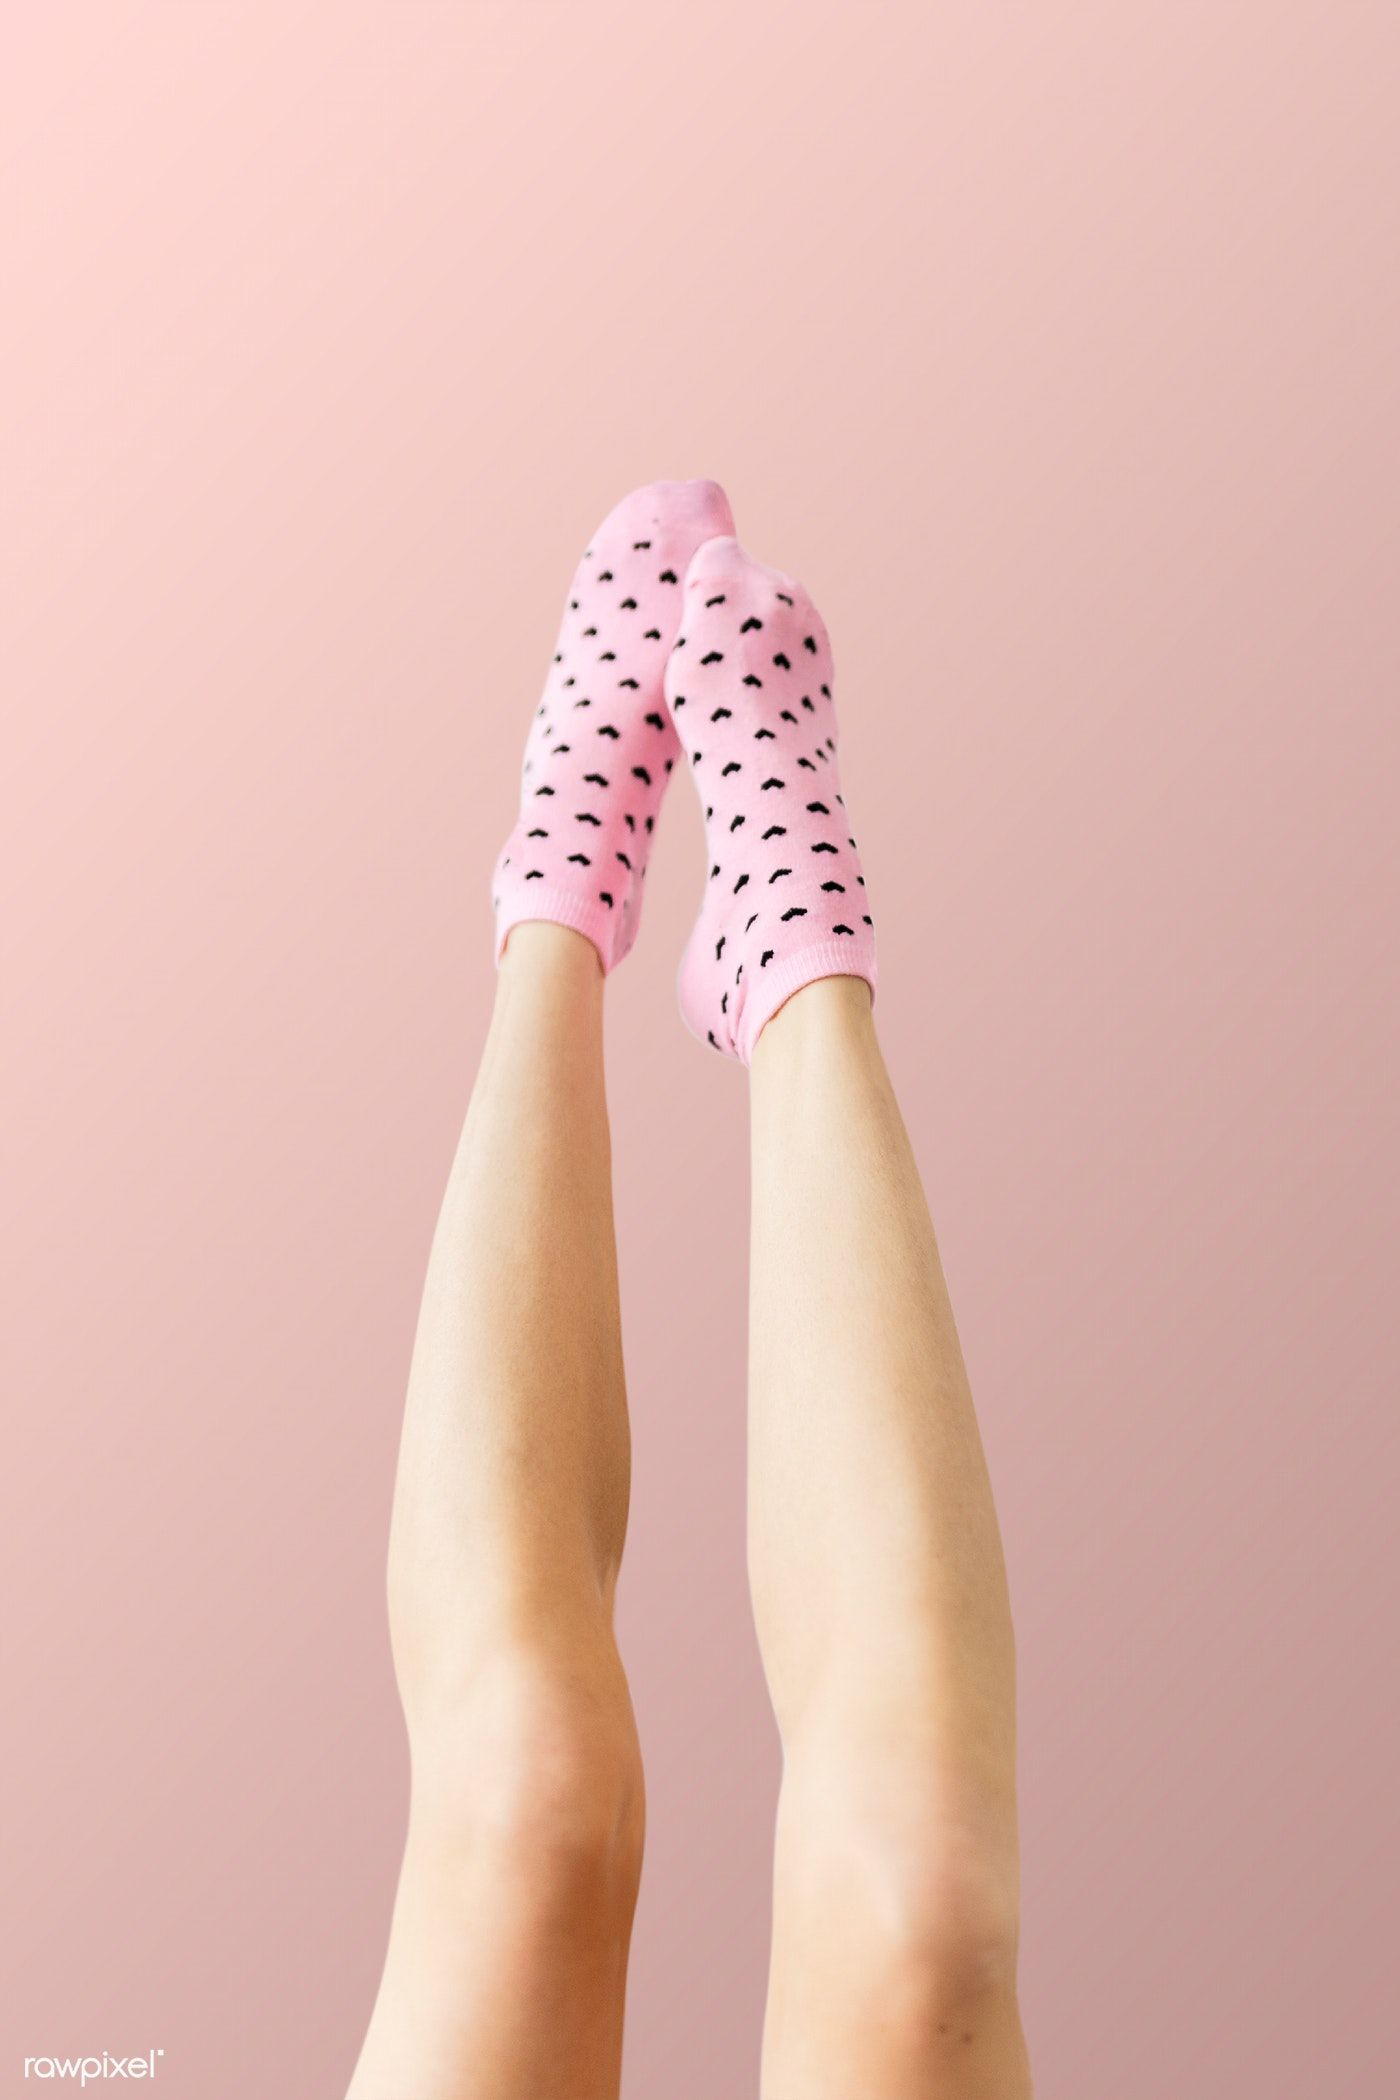 Woman Wearing Pink Socks Against A Pink Background Free Image By